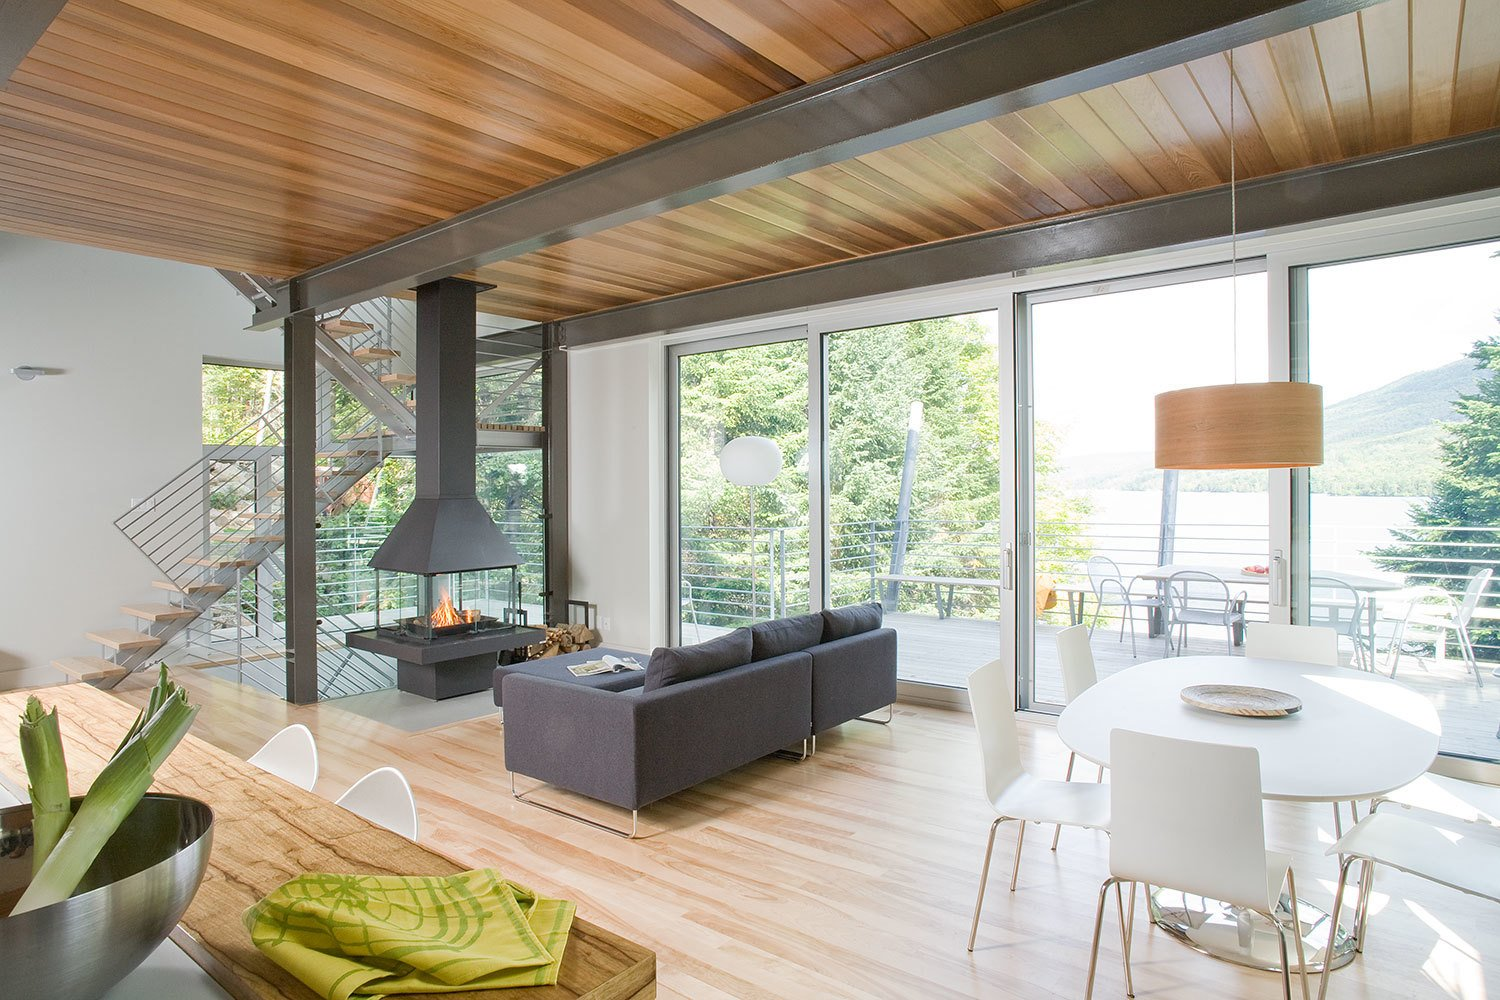 Living, Sofa, Chair, Table, Pendant, Light Hardwood, and Two-Sided Located on a steep slope that descends toward Archambault Lake, the house's elevated position presents magnificent views of the lake and surrounding forest.  Living Table Two-Sided Sofa Photos from 7 Incredible Modern Homes by Canadian Architect Paul Bernier